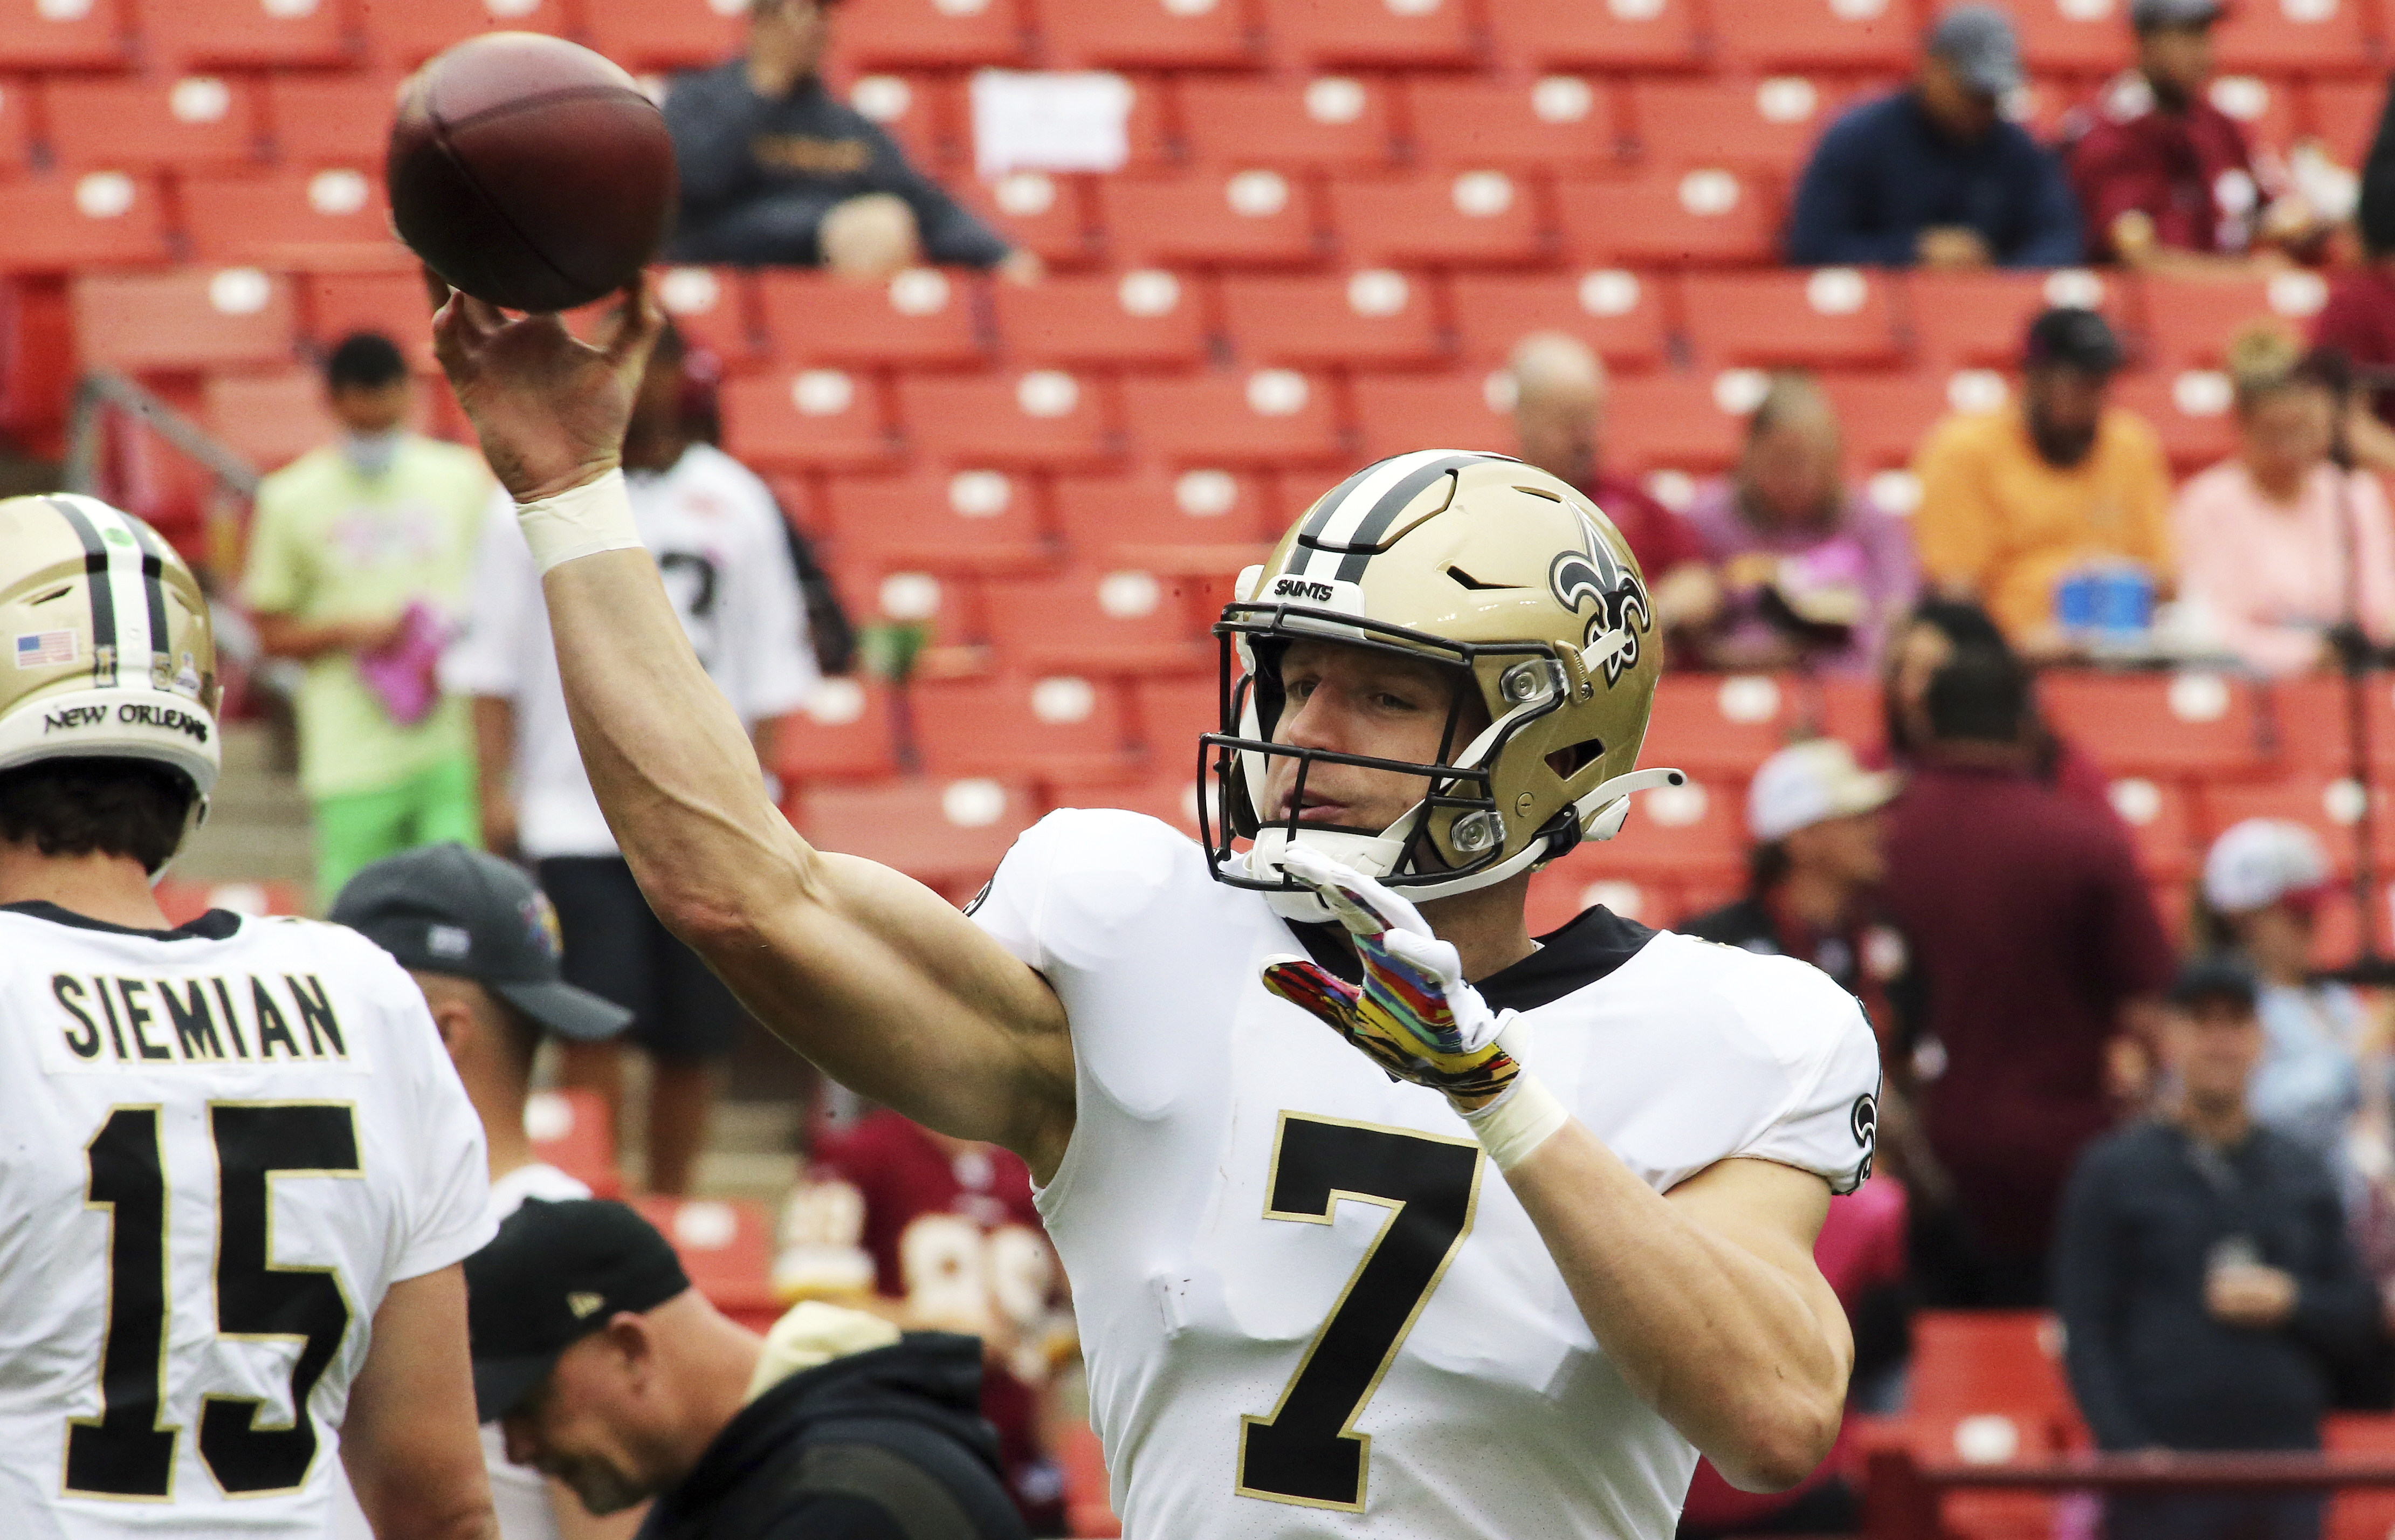 New Orleans Saints quarterback Taysom Hill (7) throws before during an NFL football game against the Washington Football Team.